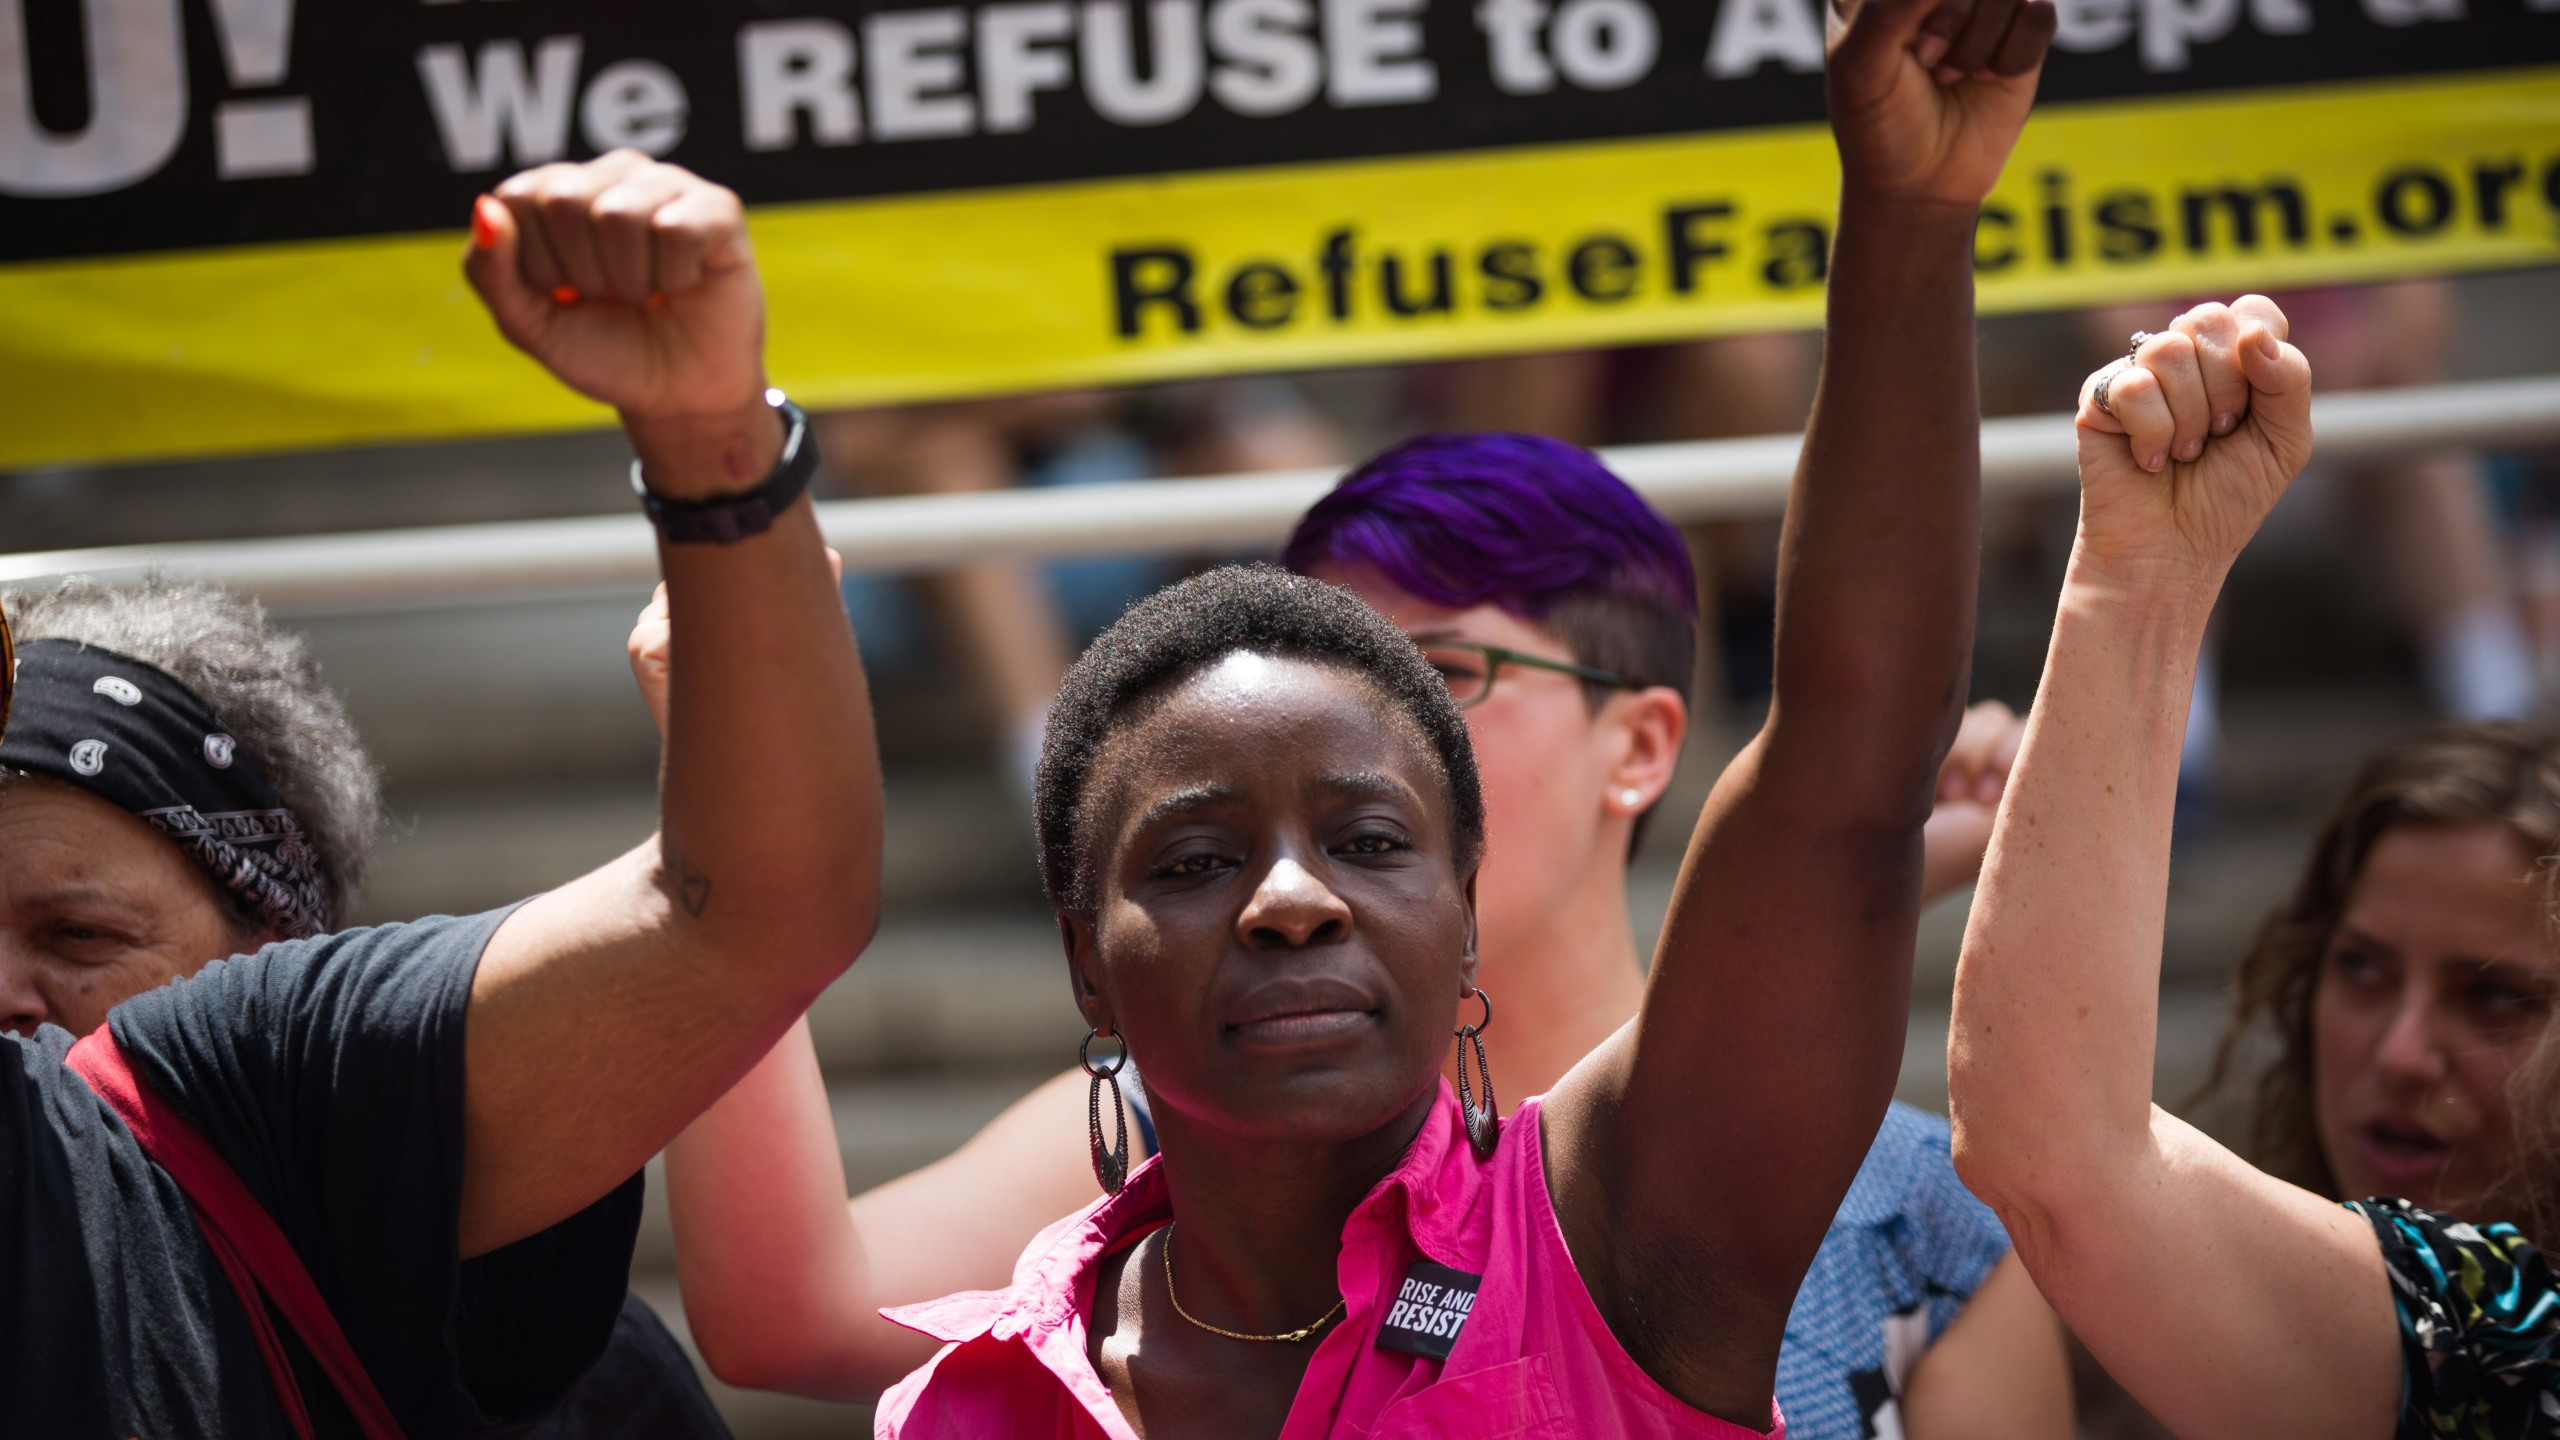 Therese Okoumou, center, protests the Trump administration's immigration policies outside of the Department of Homeland Security's Cybersecurity Summit on July 31, 2018, in New York City. (Credit: Kevin Hagen/Getty Images)